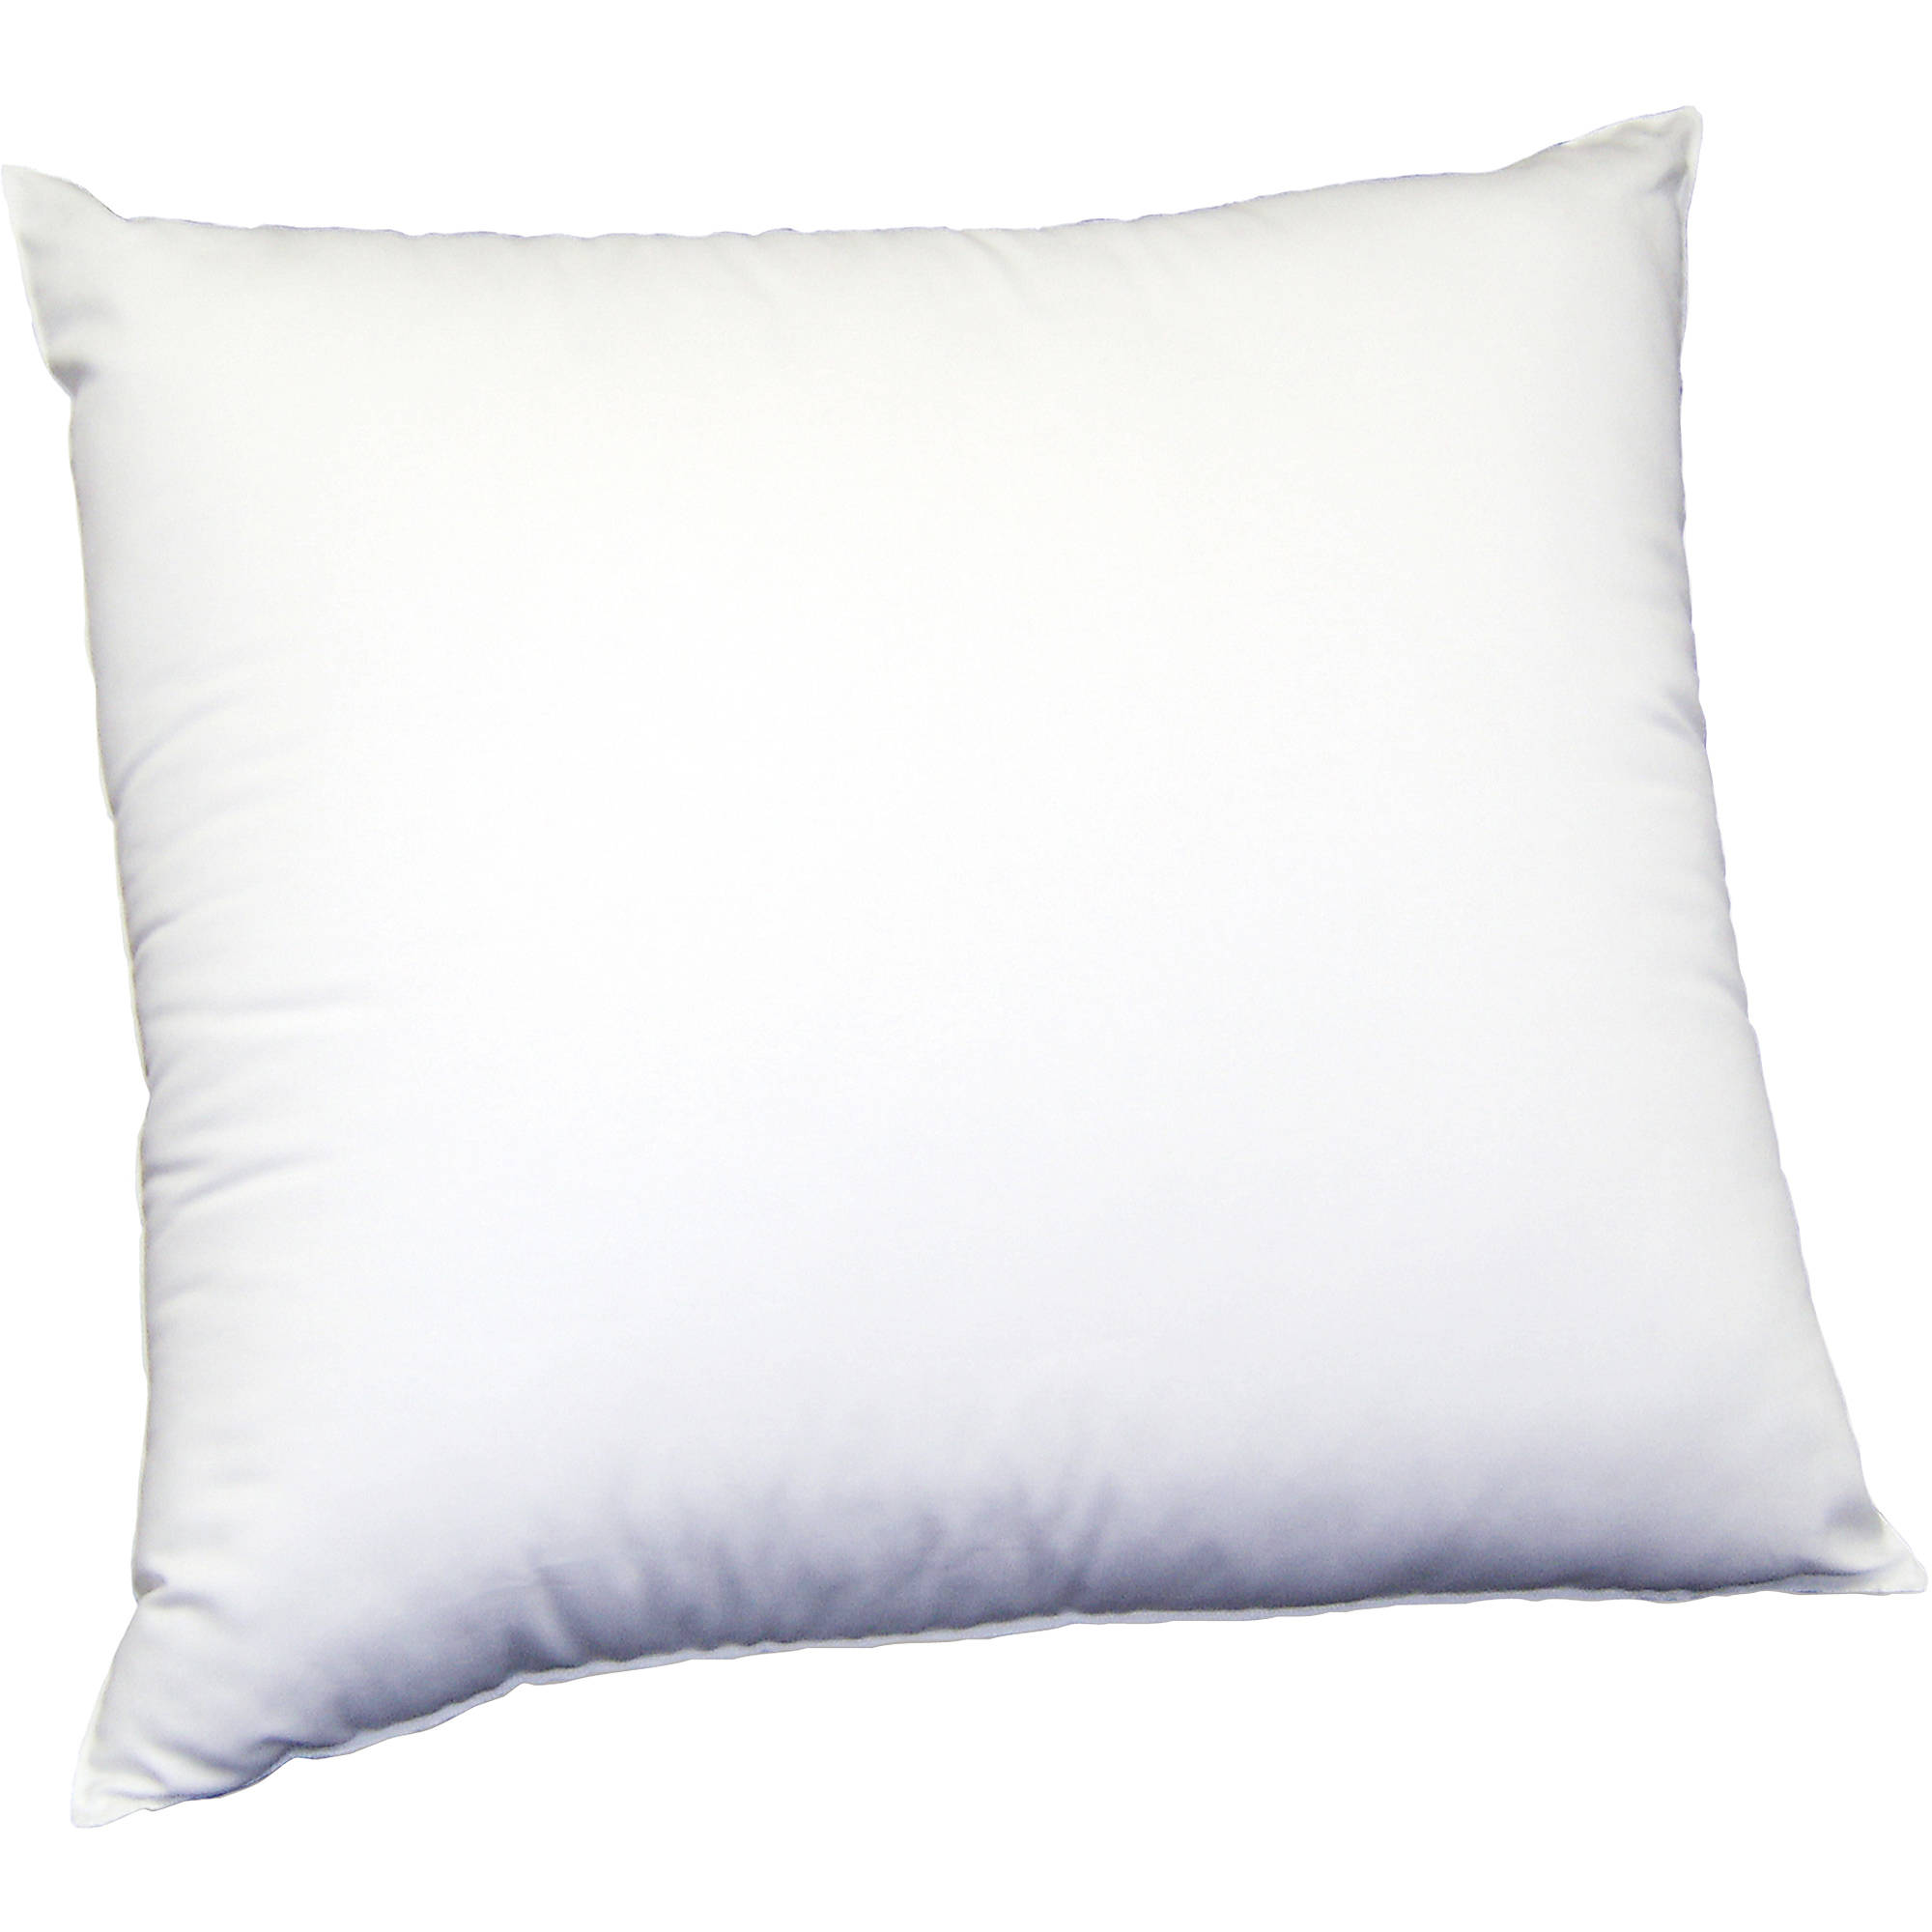 Beautyrest Euro Pillow for Square Decorative Shams by